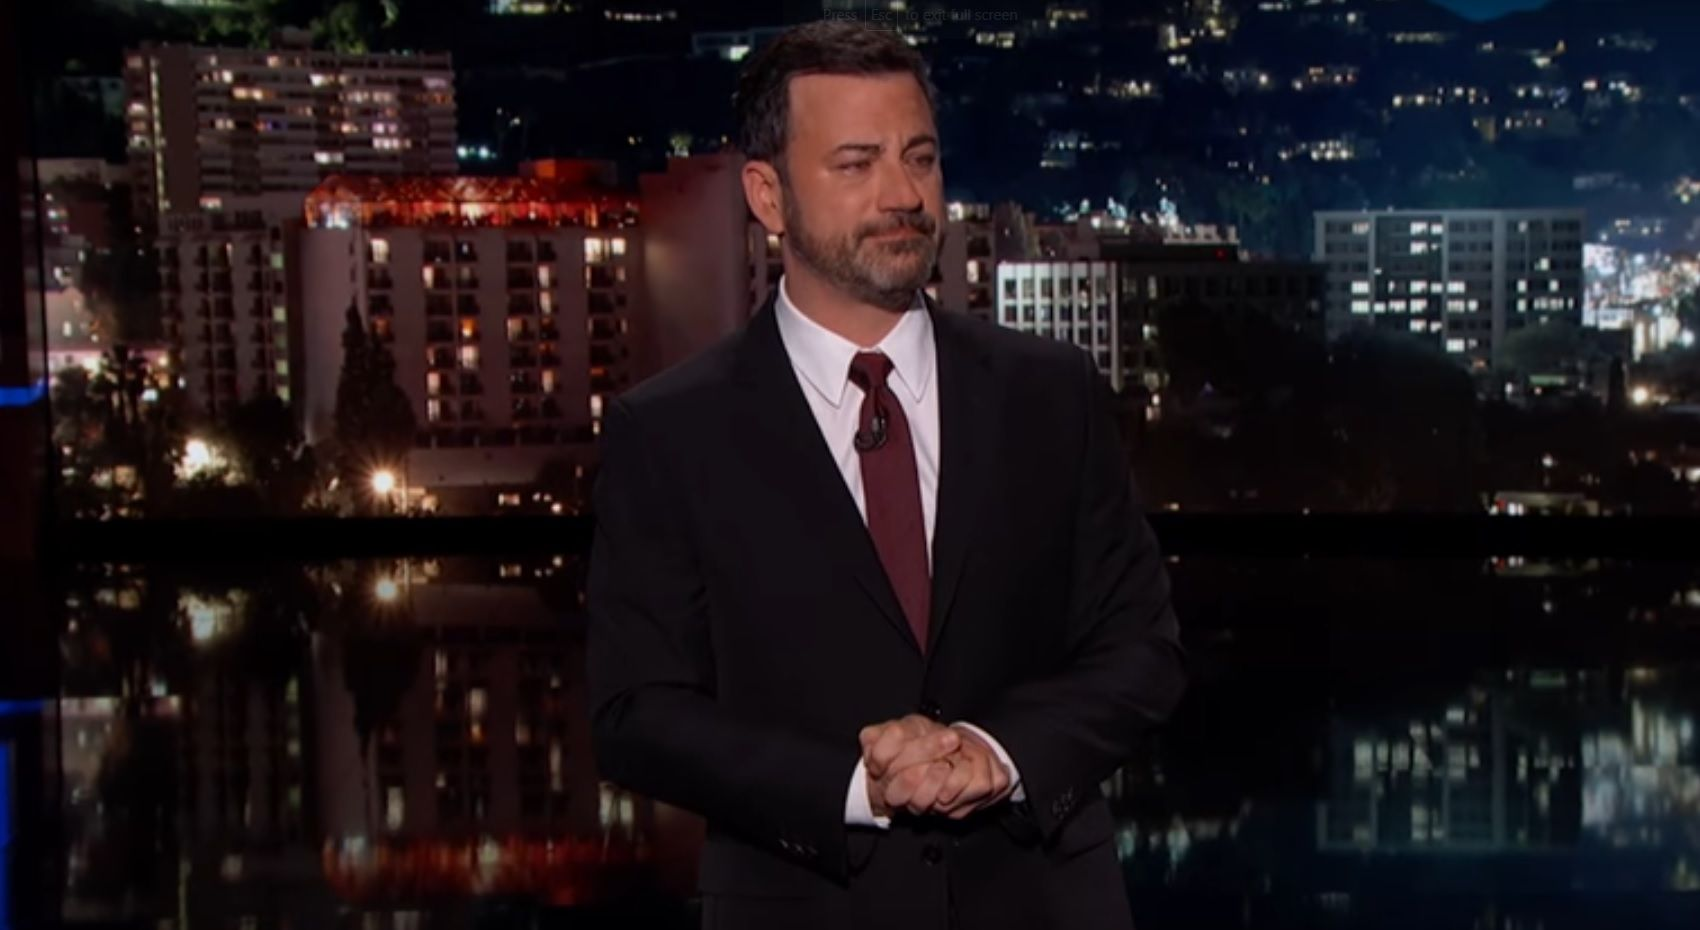 Jimmy Kimmel's moving admission on Jimmy Kimmel Live